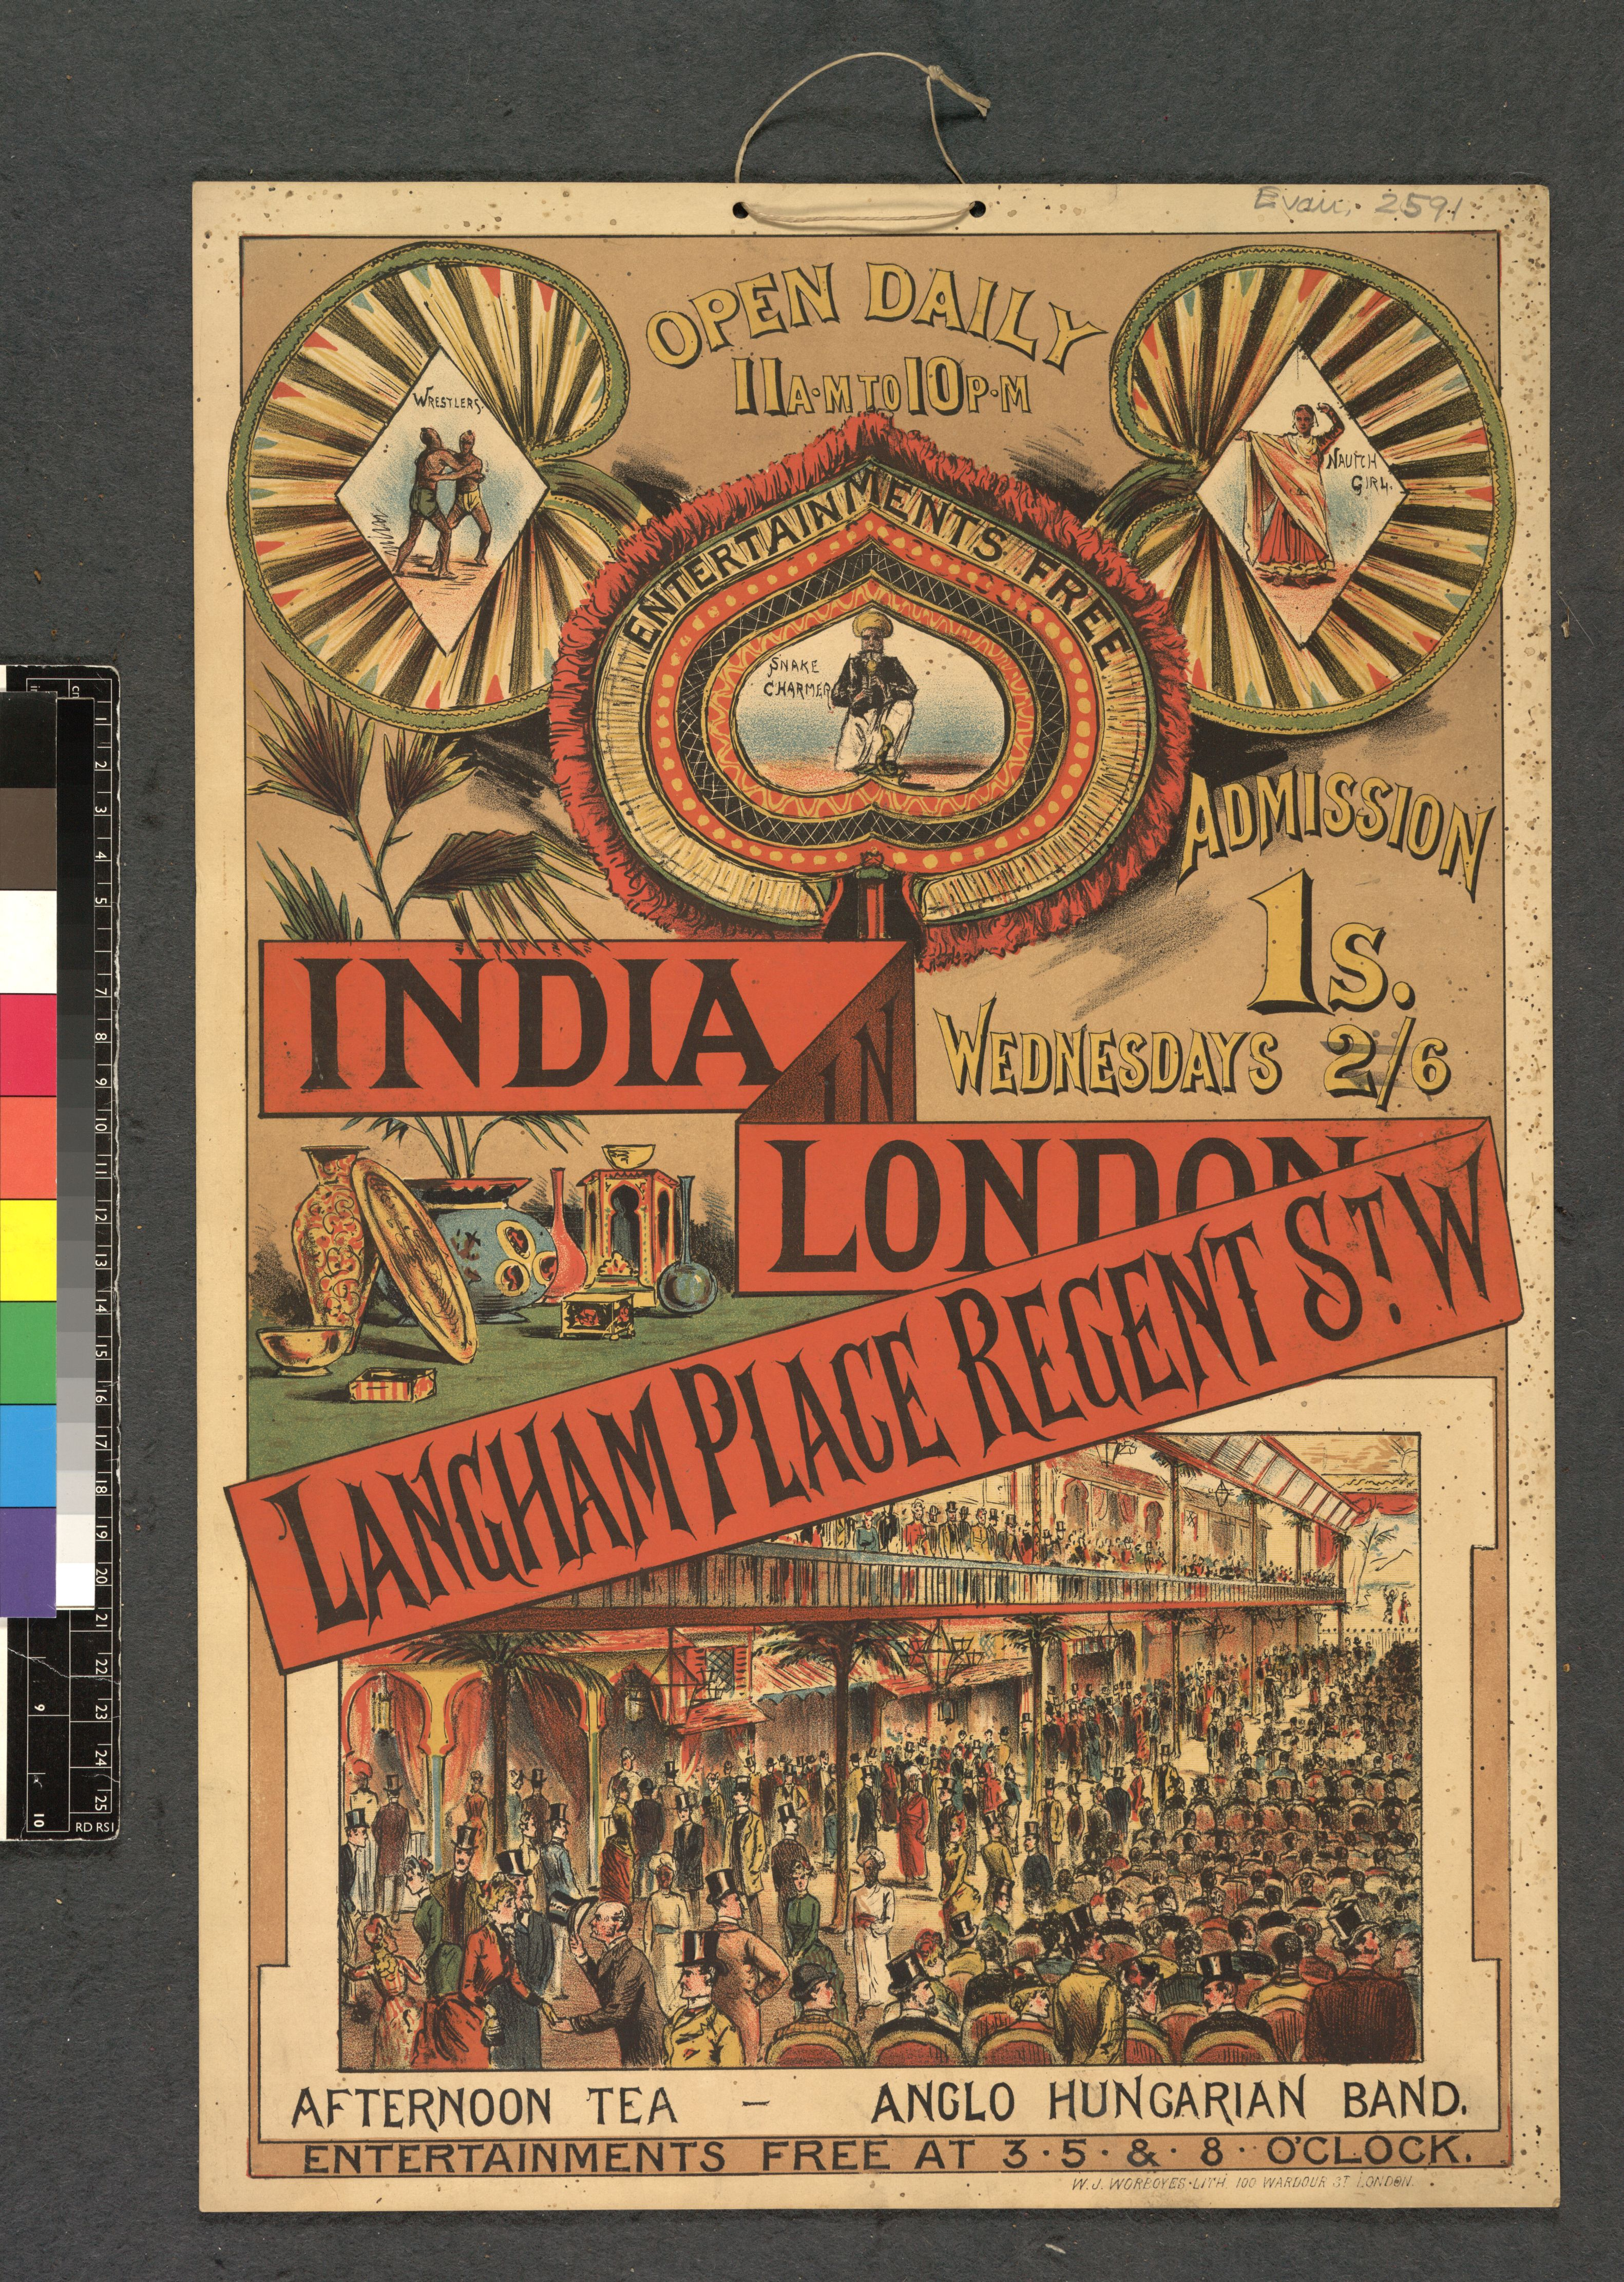 Poster for a daily exhibition at Langham Place, Regent Street, London, 1886. The snake charmer, wrestlers and dancing girl performing at Langham Place would have been regarded with curiosity, just as South Asian people at the exhibition were seen as 'a prodigious wonder' according to one Indian observer. Image credit: Courtesy of the British Library Board